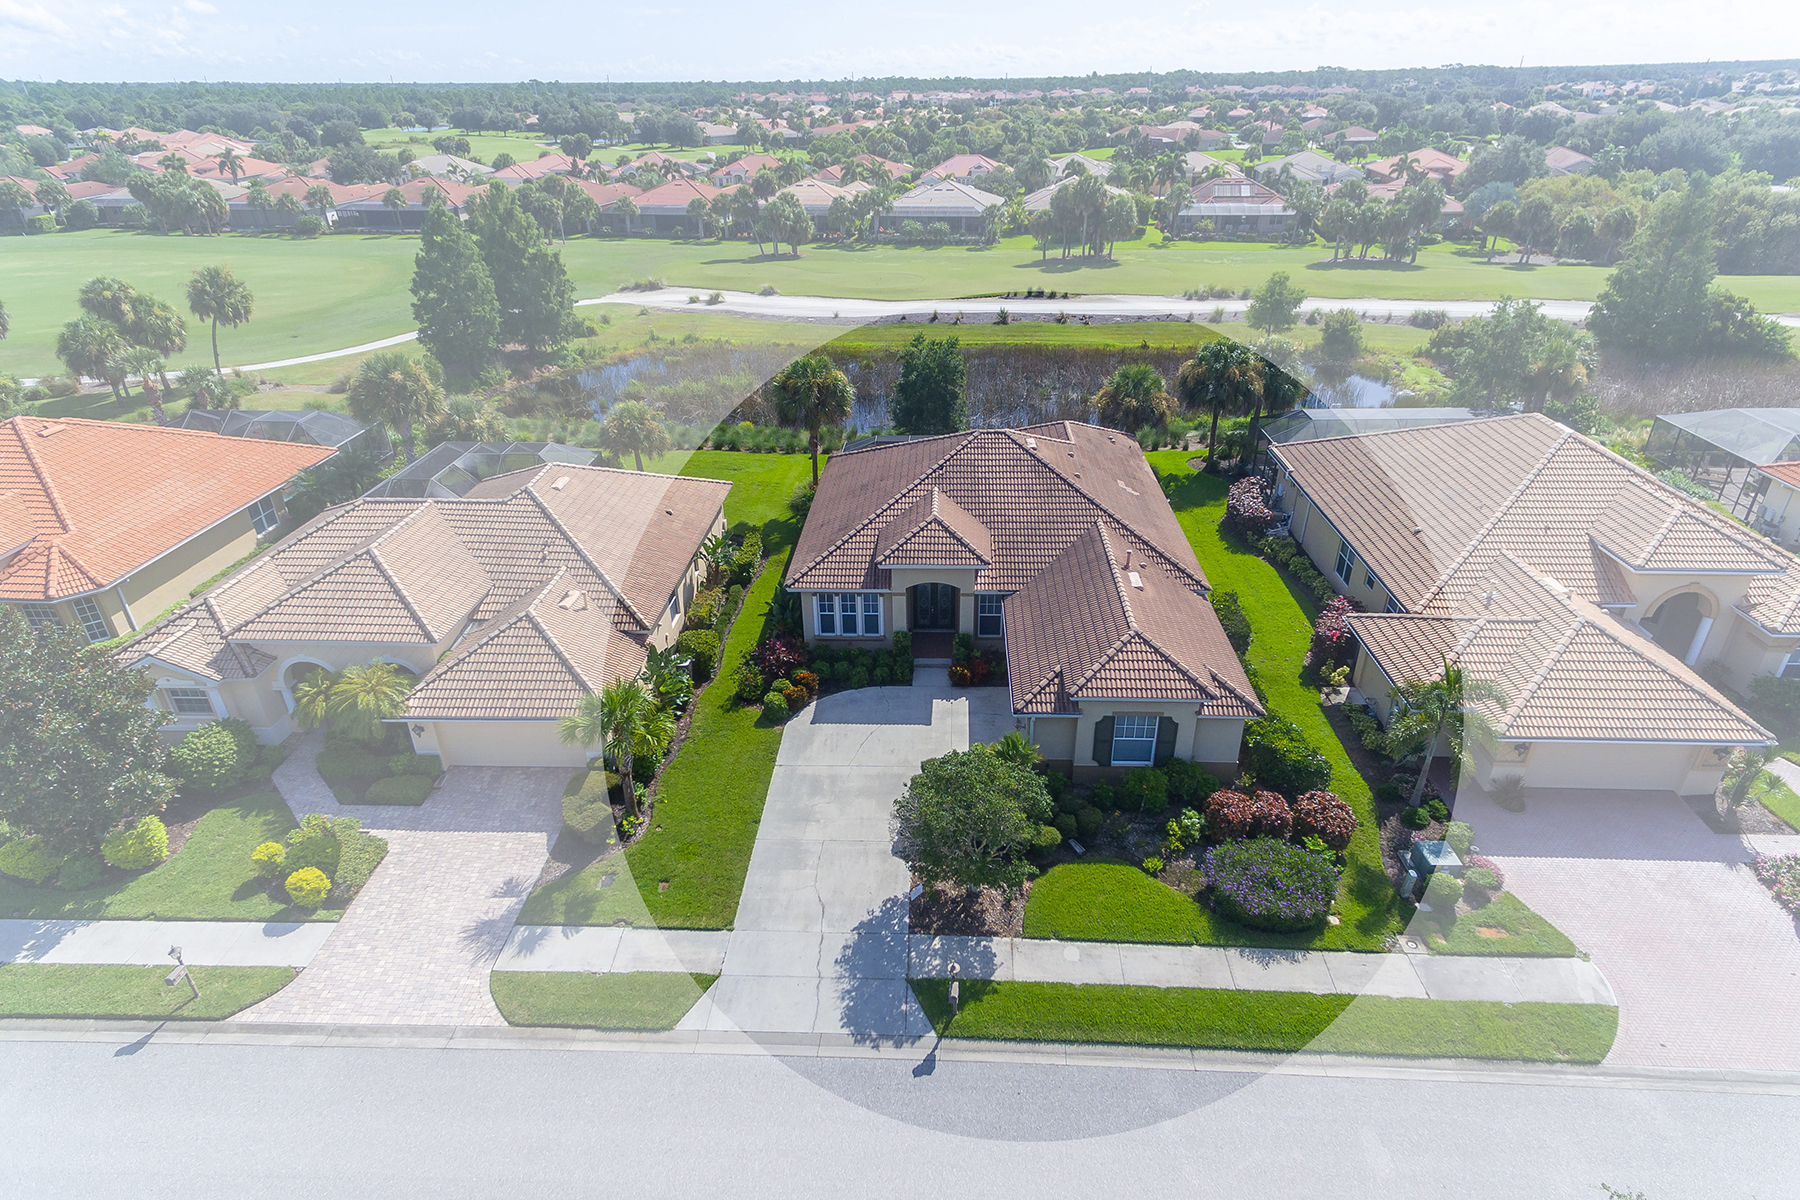 Single Family Homes for Sale at VENETIAN GOLF & RIVER CLUB 114 Montelluna Dr, North Venice, Florida 34275 United States